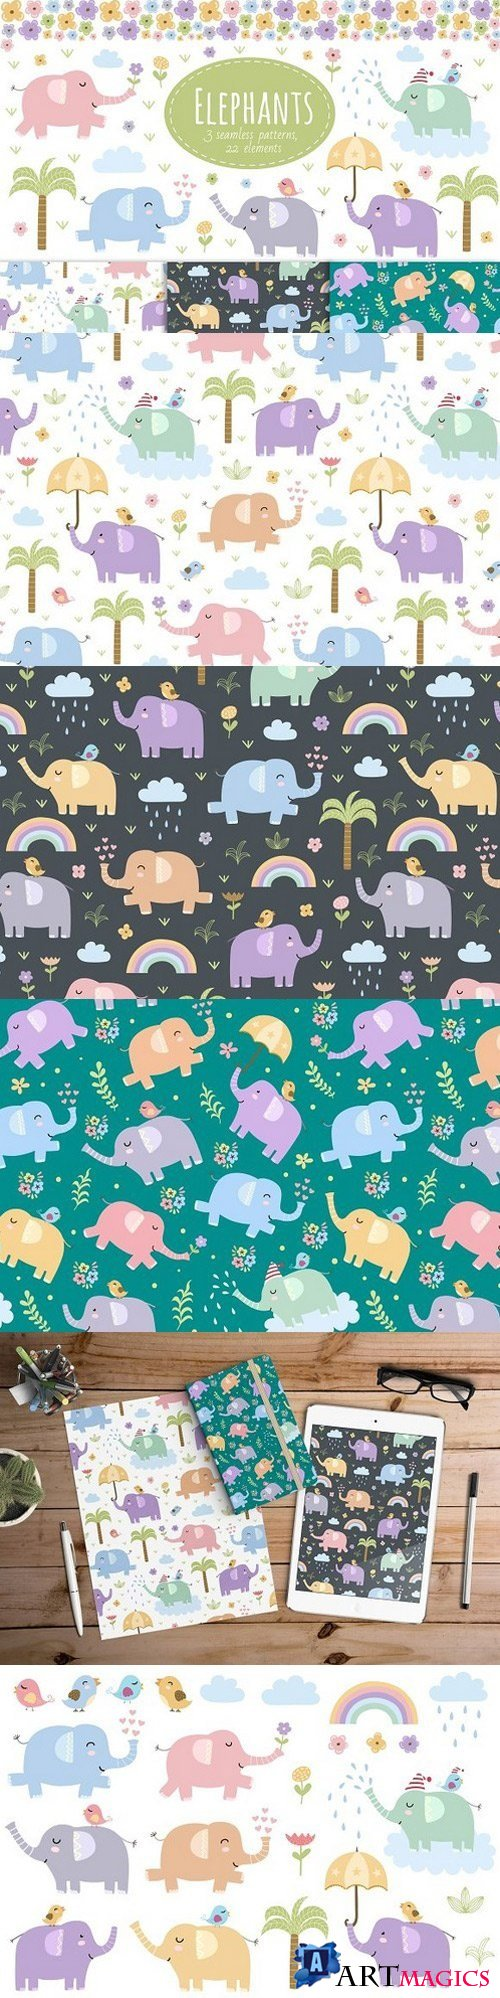 Elephants: seamless patterns&clipart 985196